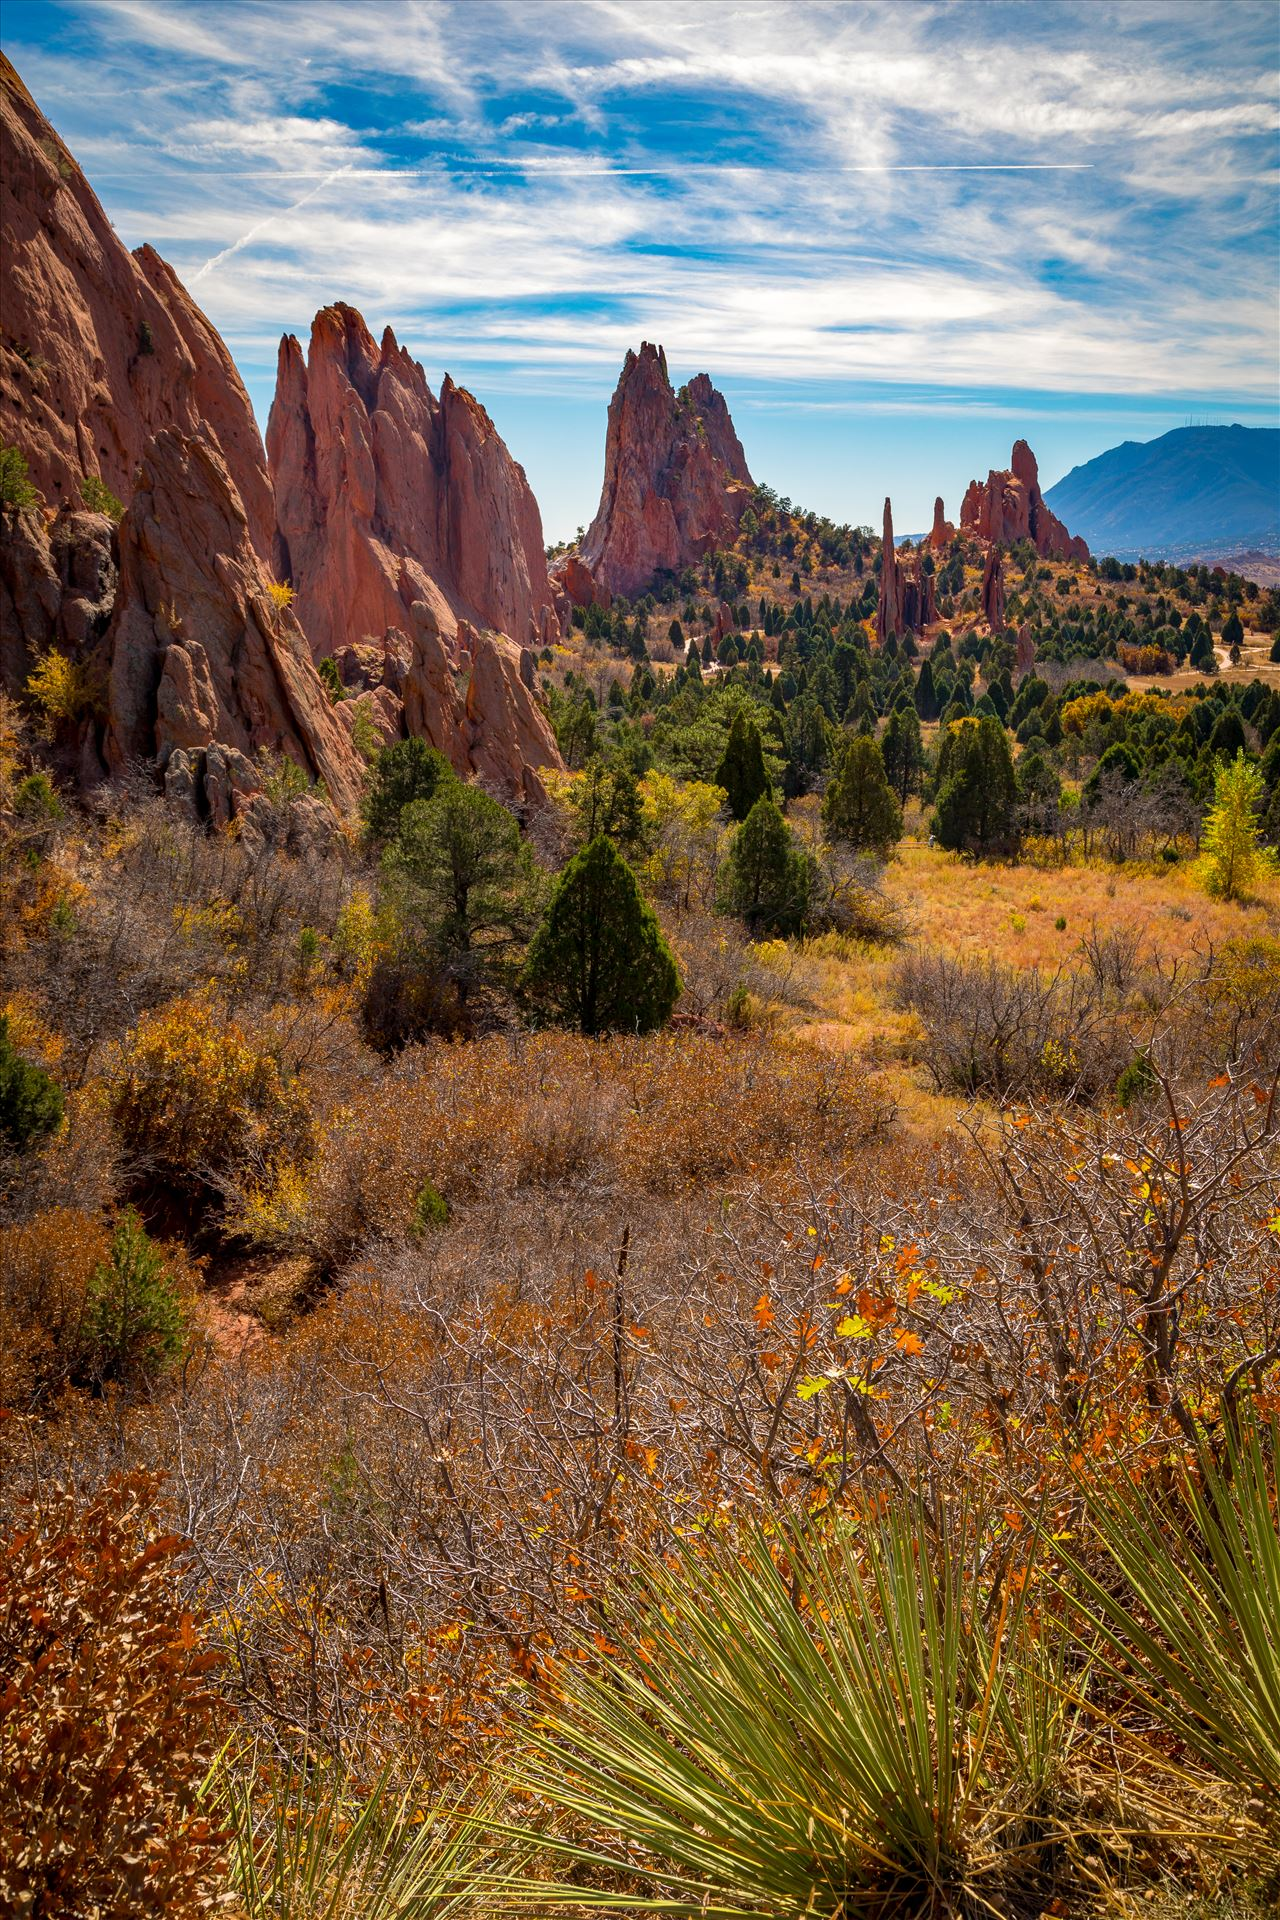 Garden of the Gods Spires - The spires at the Garden of the Gods. by D Scott Smith